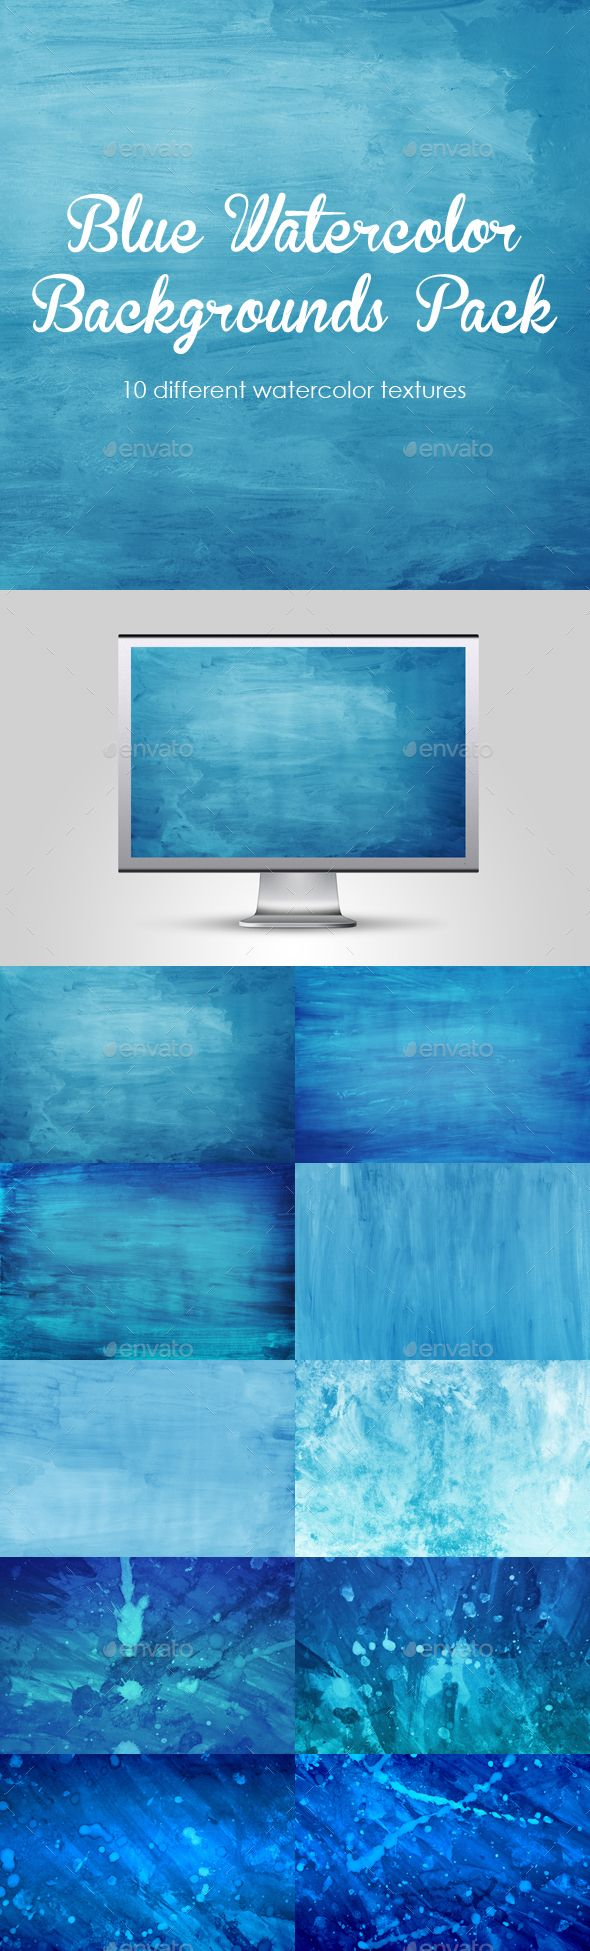 Blue Watercolor Backgrounds Pack – 10 Winter Watercolor Textures. Watercolor painted blue backgrounds. Hand drawn, simple, stylish, perfect for your projects, manipulations, flyers, presentation, design, ads, posters ; you can also use for social networks; facebook, twiter, google, pinerest etc.